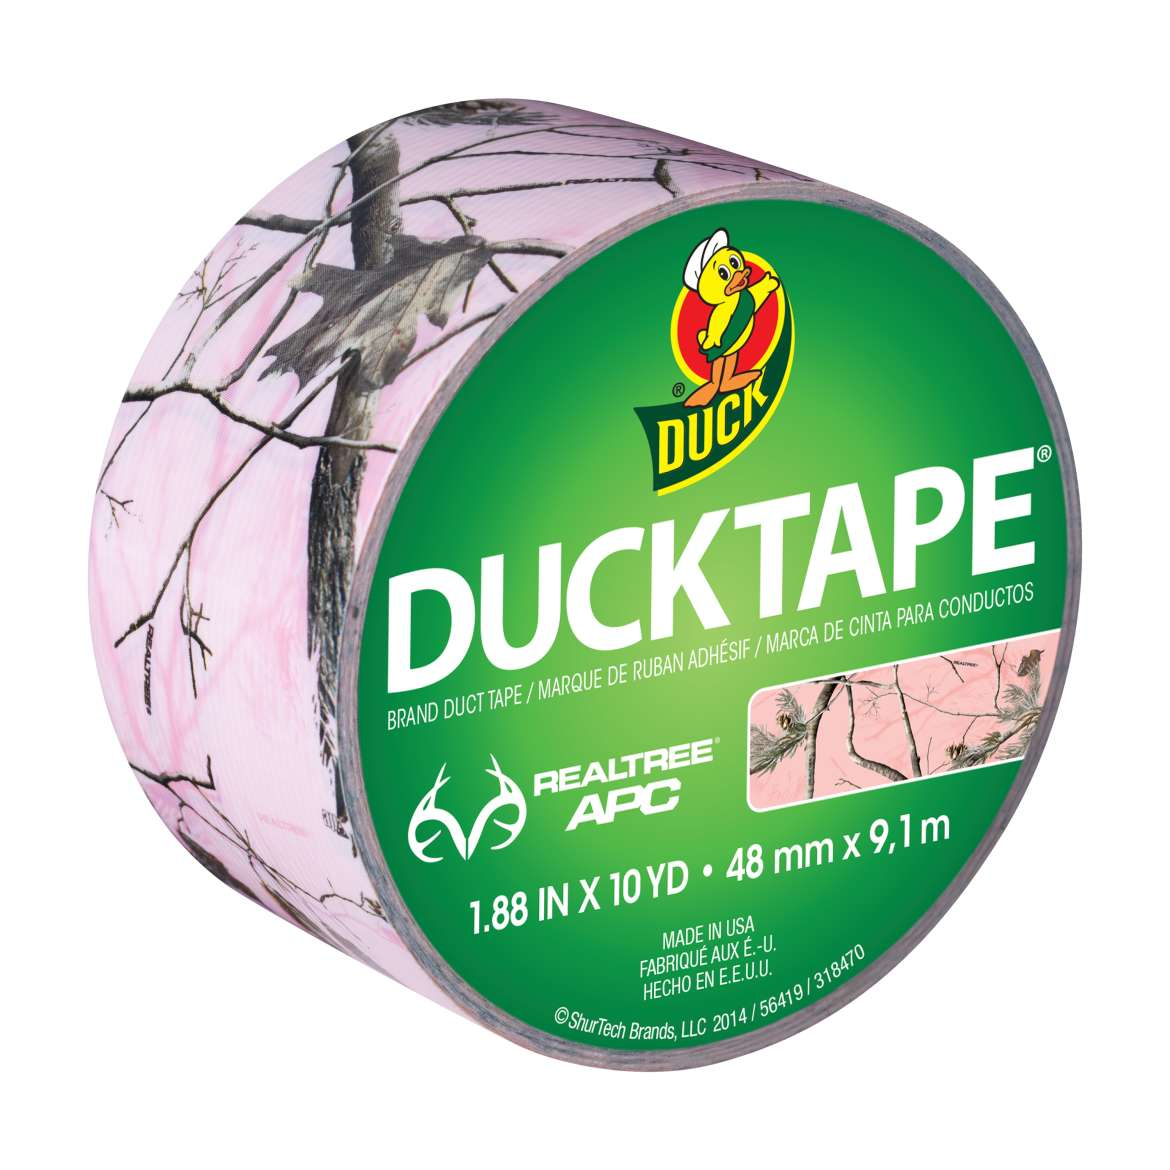 Duck Brand Duct Tape, 1.88 in. x 10 yds., Realtree Pink Camo